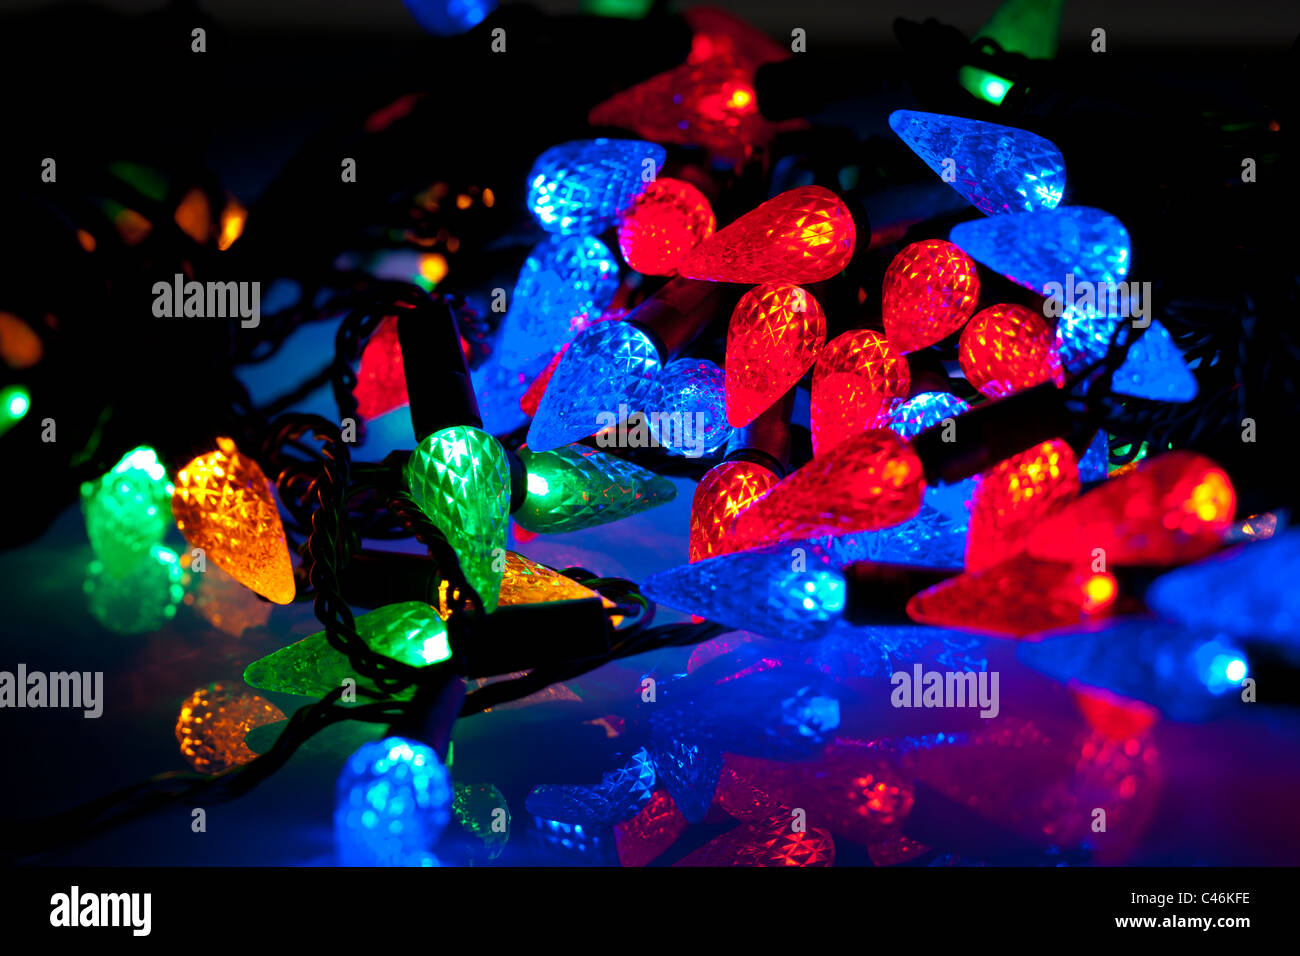 Cone shaped multicoloured Christmas lights - Stock Image